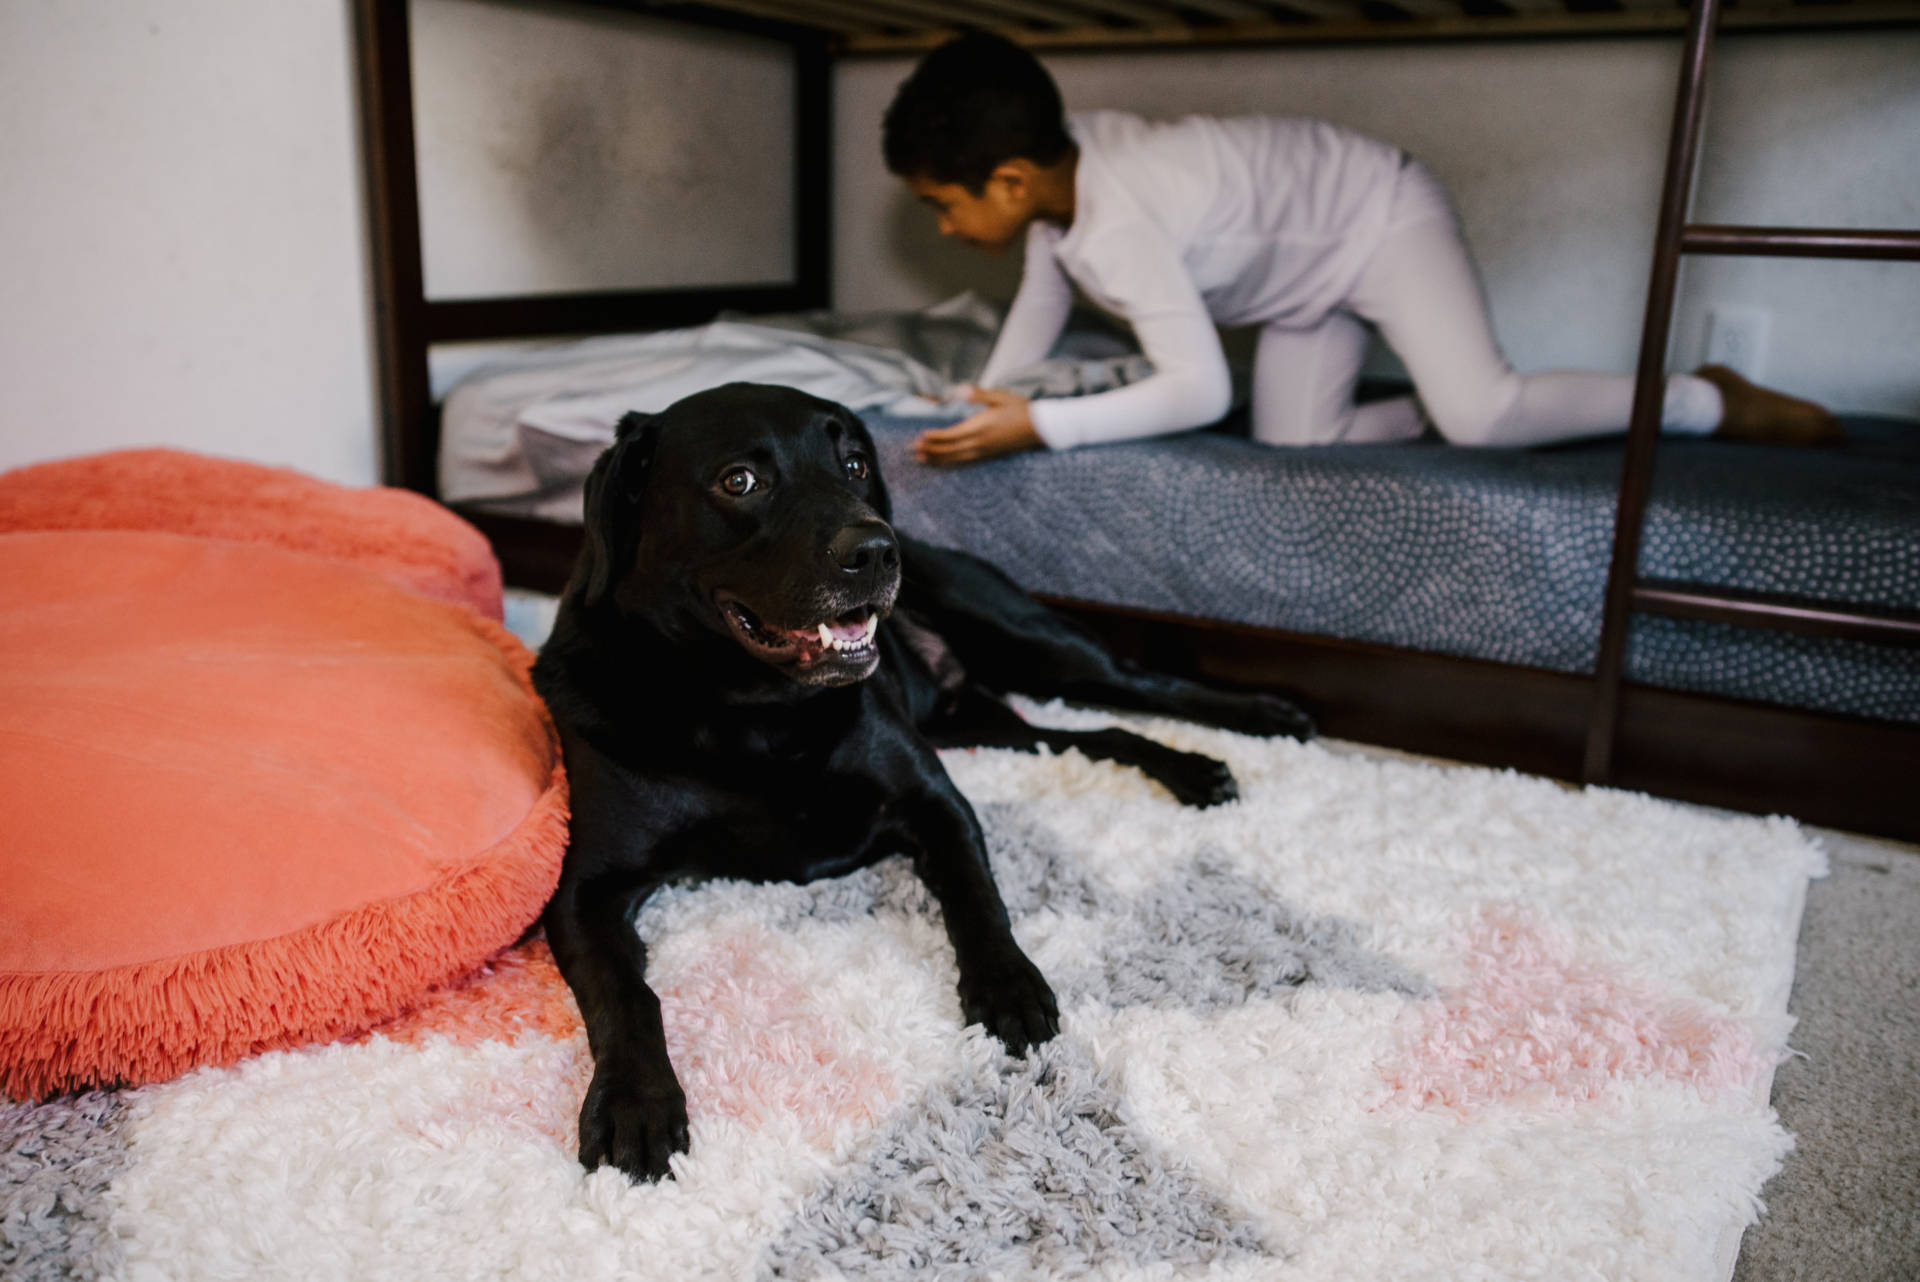 Luft: A Luxury Mattress At An Affordable Price